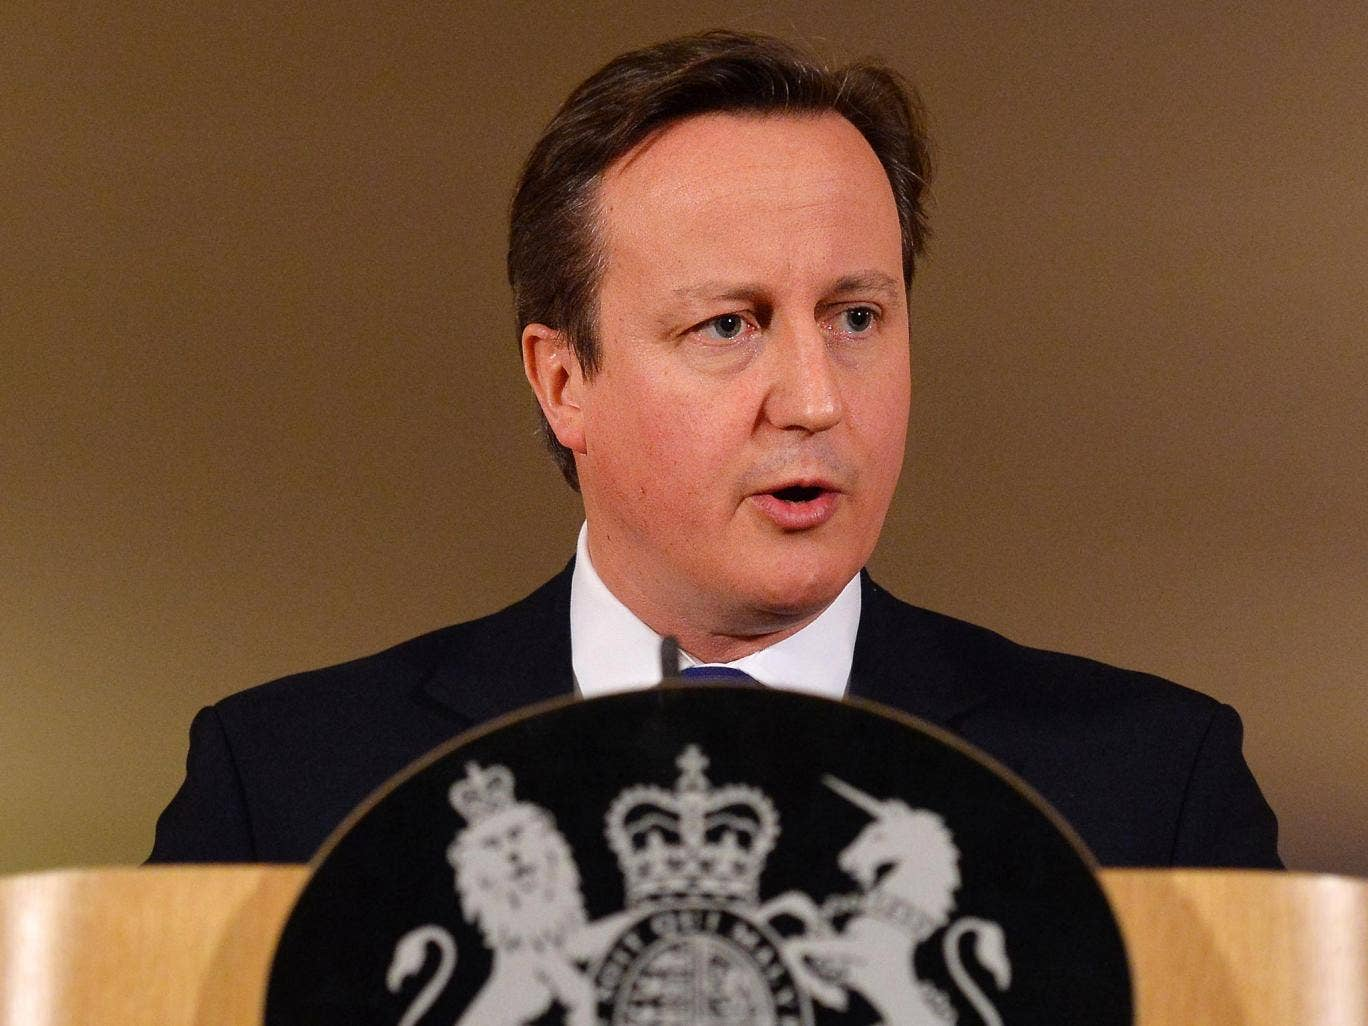 David Cameron does not want to enter into another coalition if there is another hung parliament